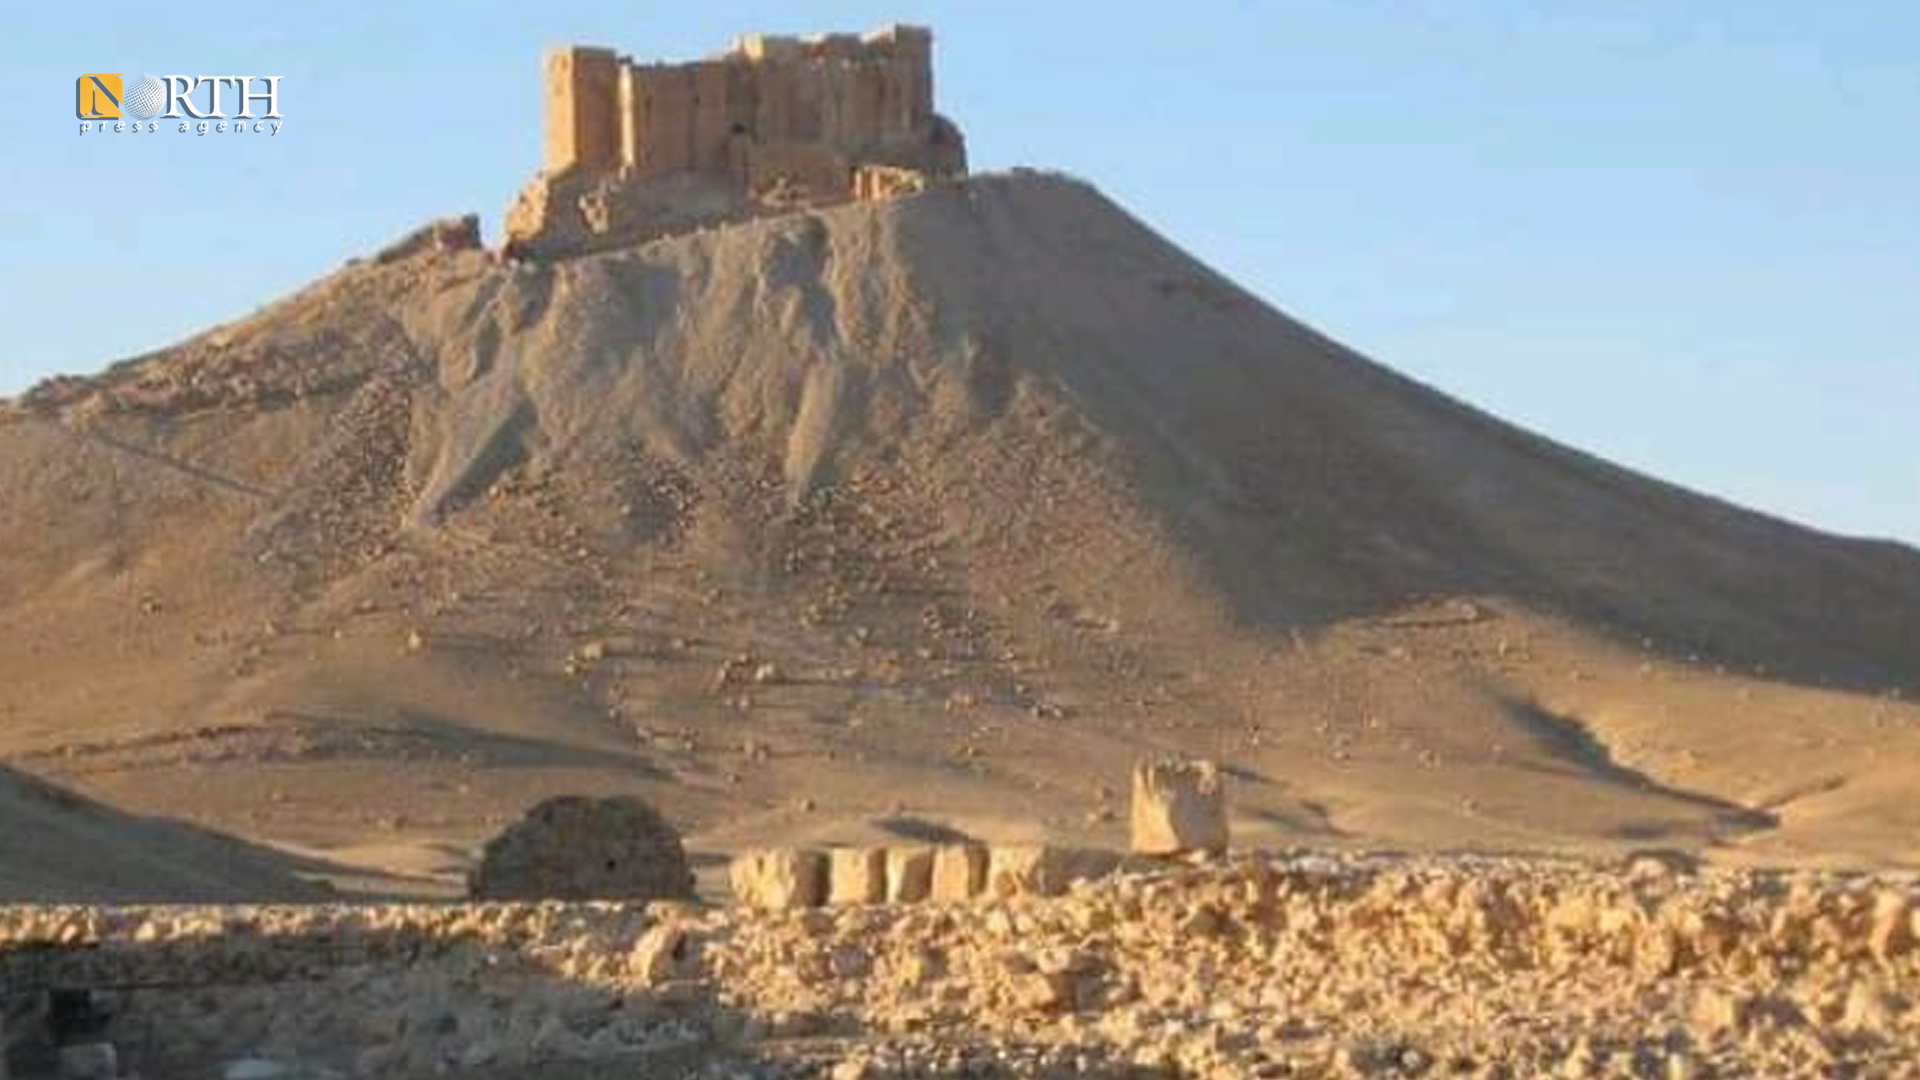 Place of establishing military point next to archaeological site, east of Palmyra – North Press